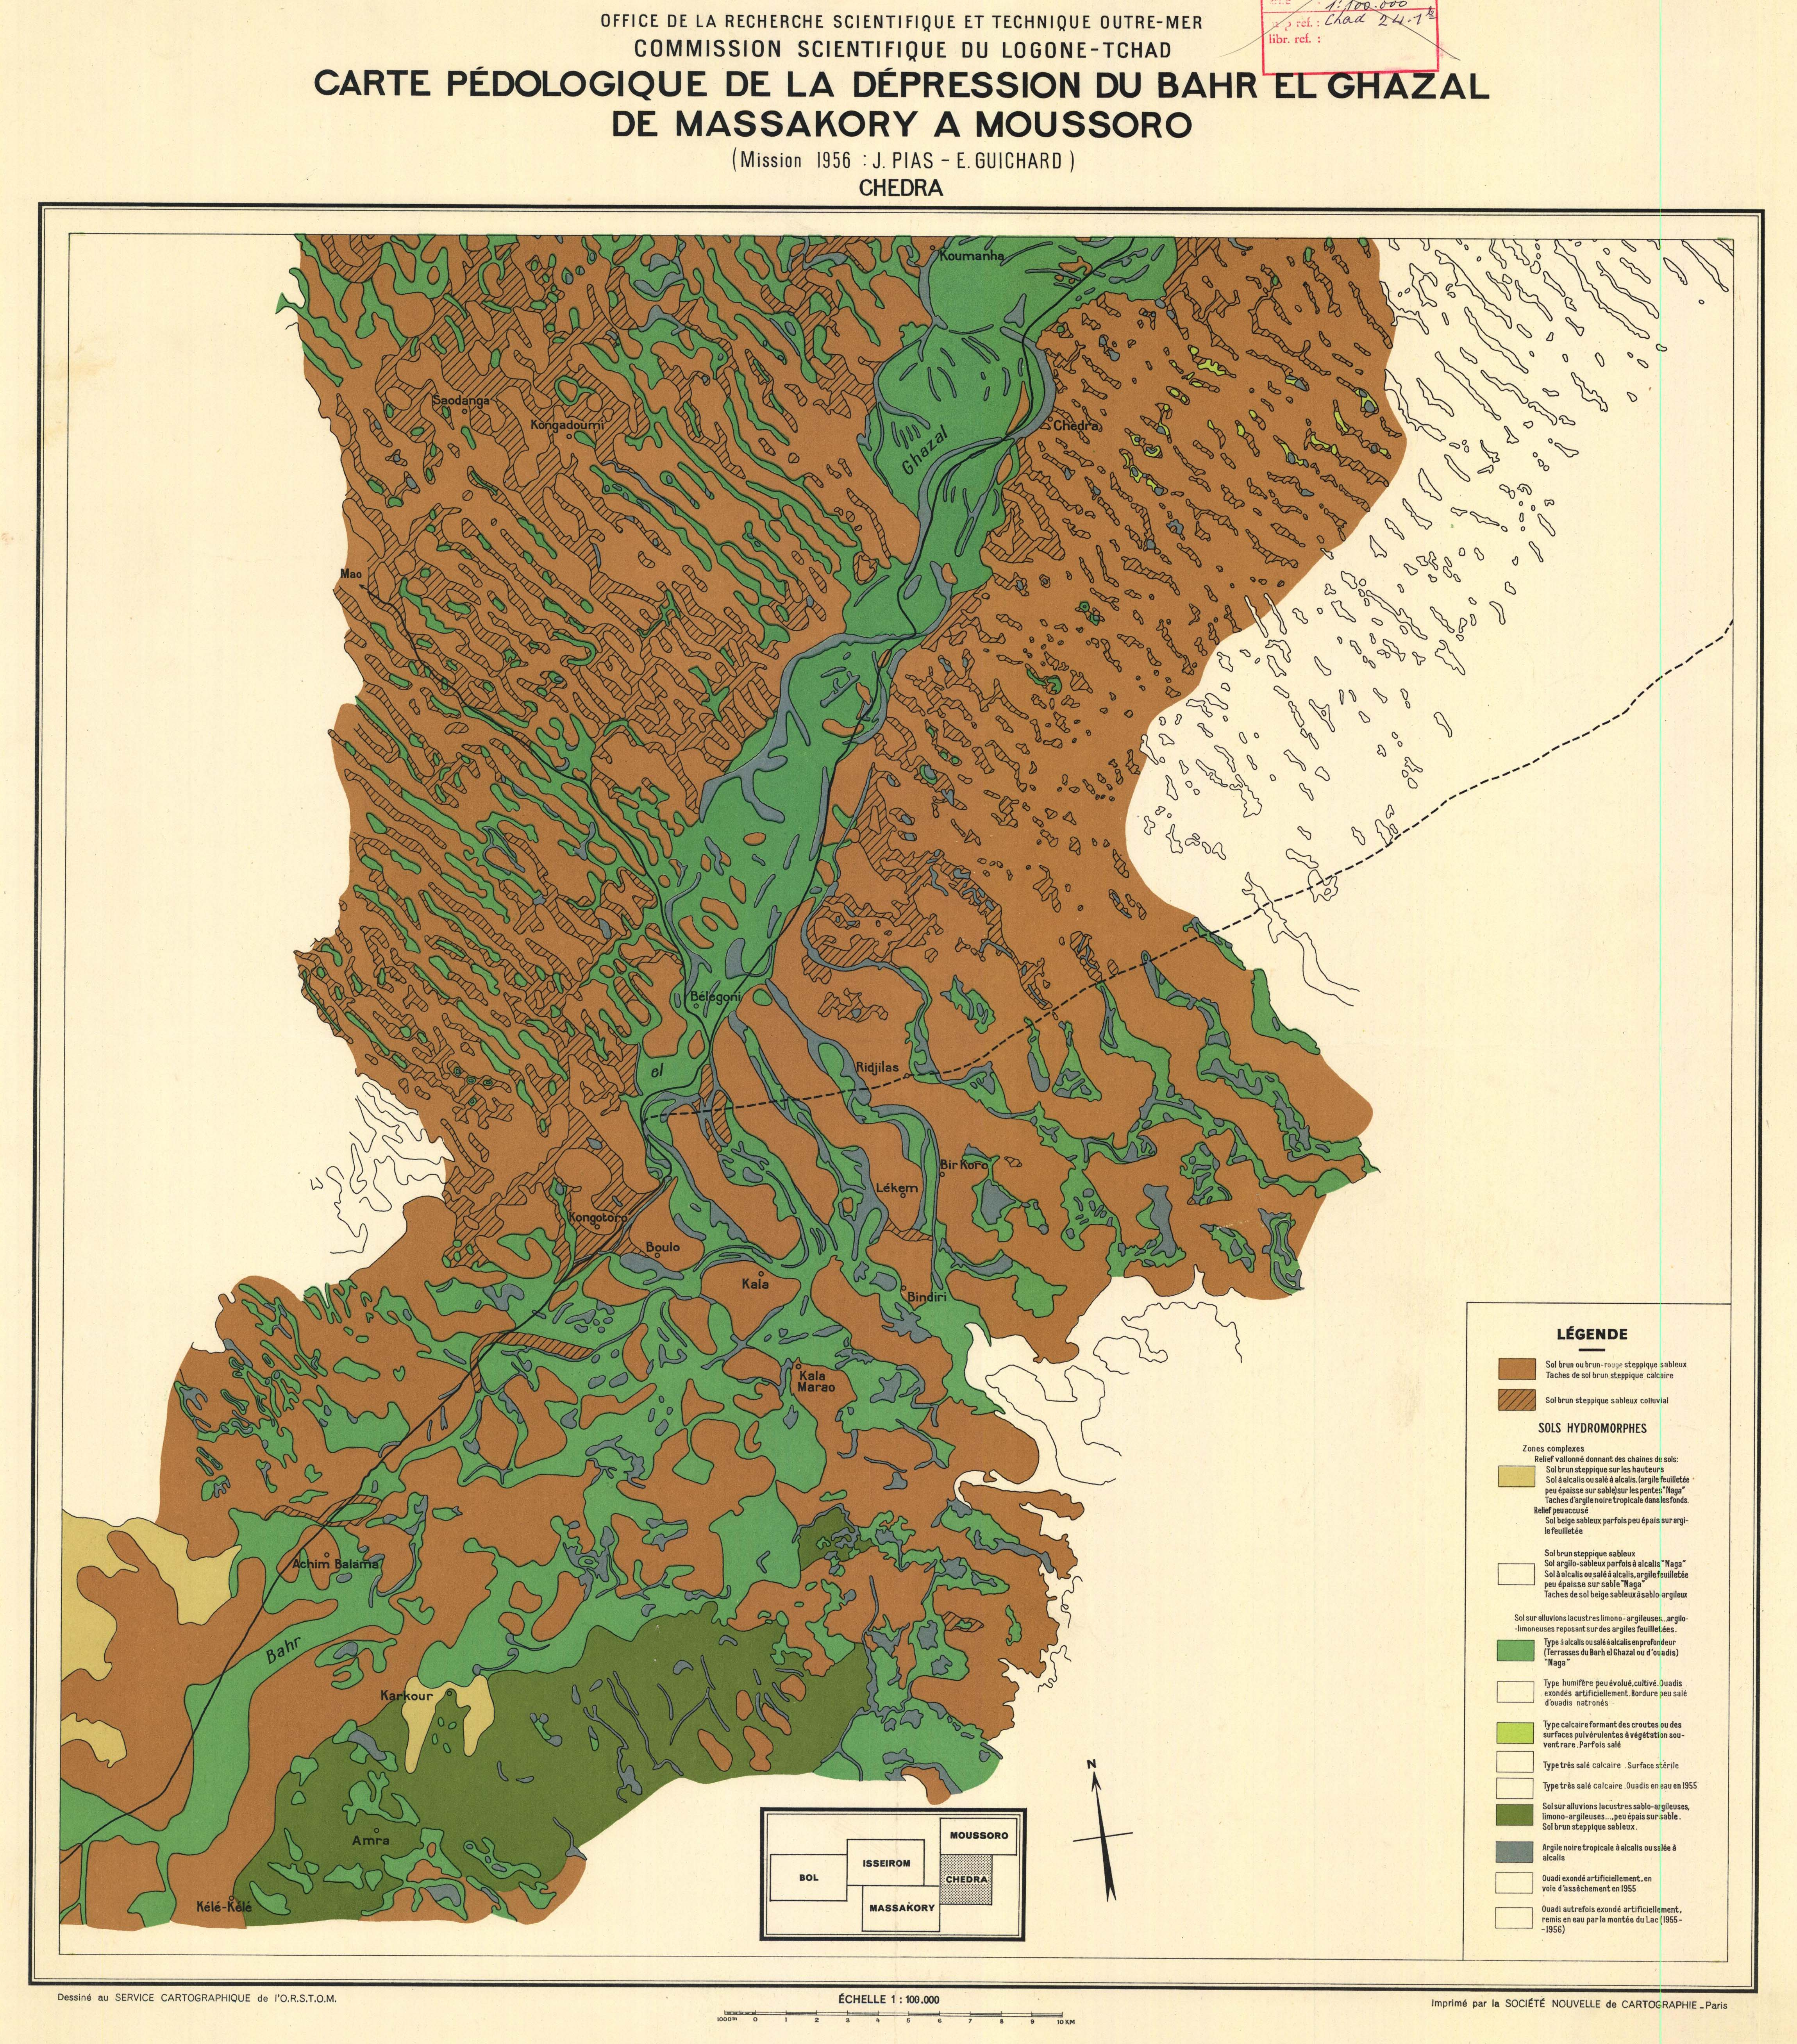 Soil esdac european commission resource type national soil maps eudasm maps maps documents themesub theme networkcooperations projects continent africa country chad publicscrutiny Gallery